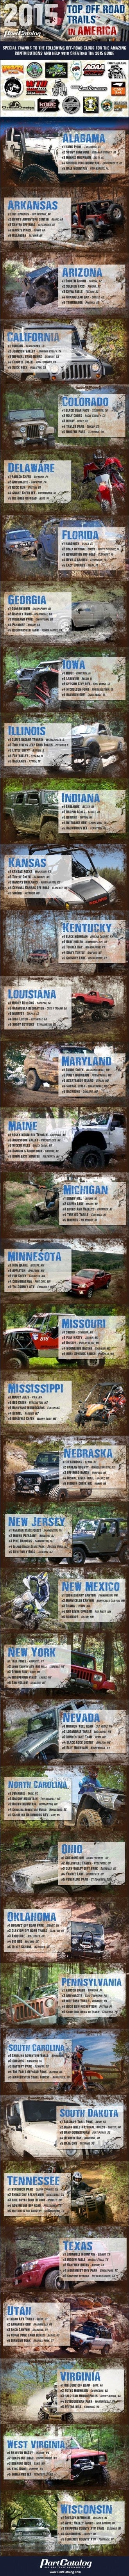 2015-top-off-road-trails-parks-america-min